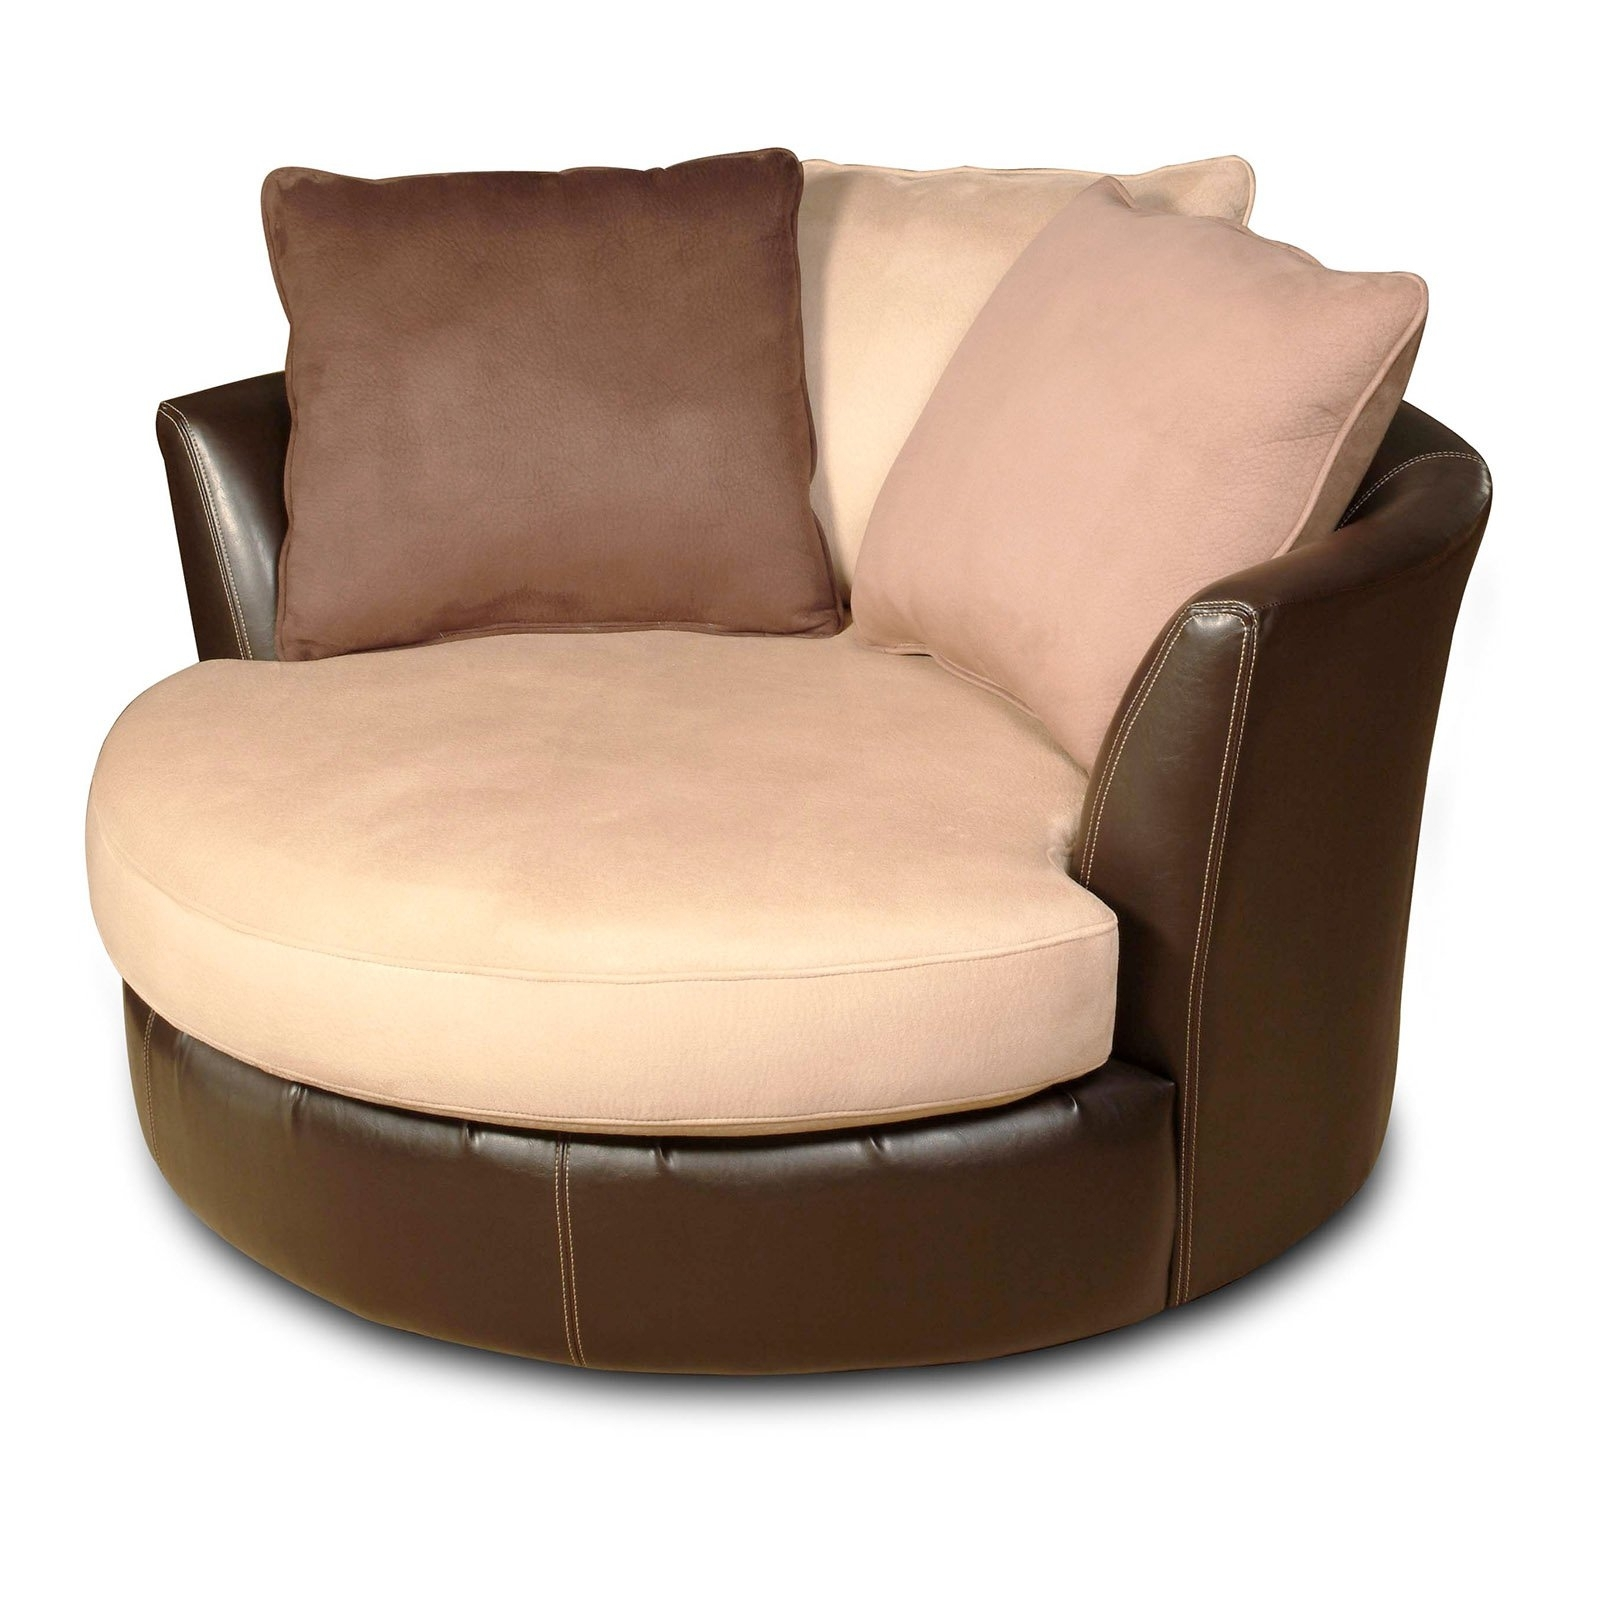 Popular Awesome Round Swivel Sofa Chair Images – Liltigertoo Inside Spinning Sofa Chairs (View 7 of 15)